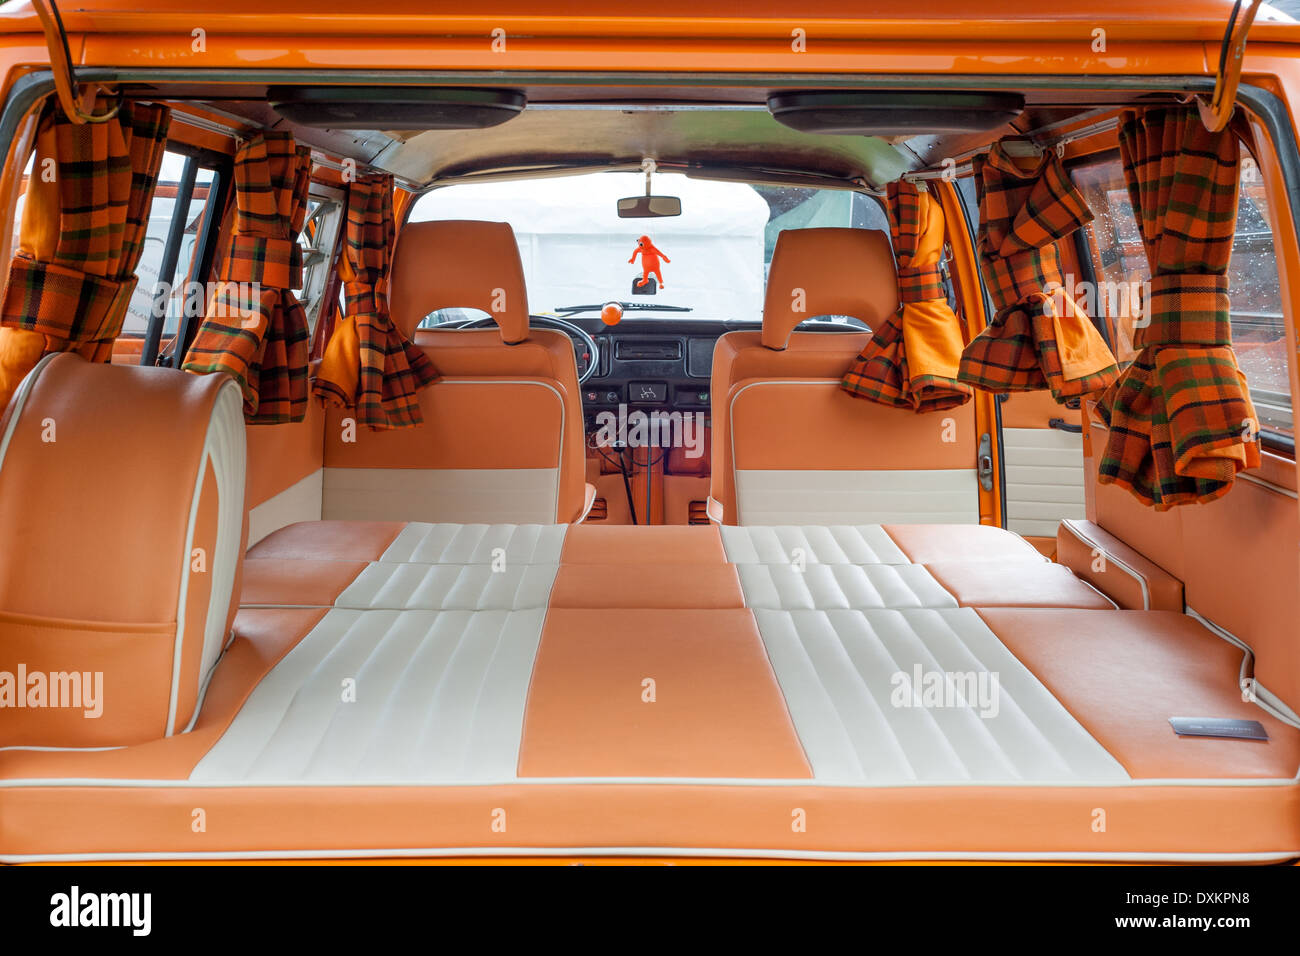 Restored Interior Of A Volkswagen Camper Van